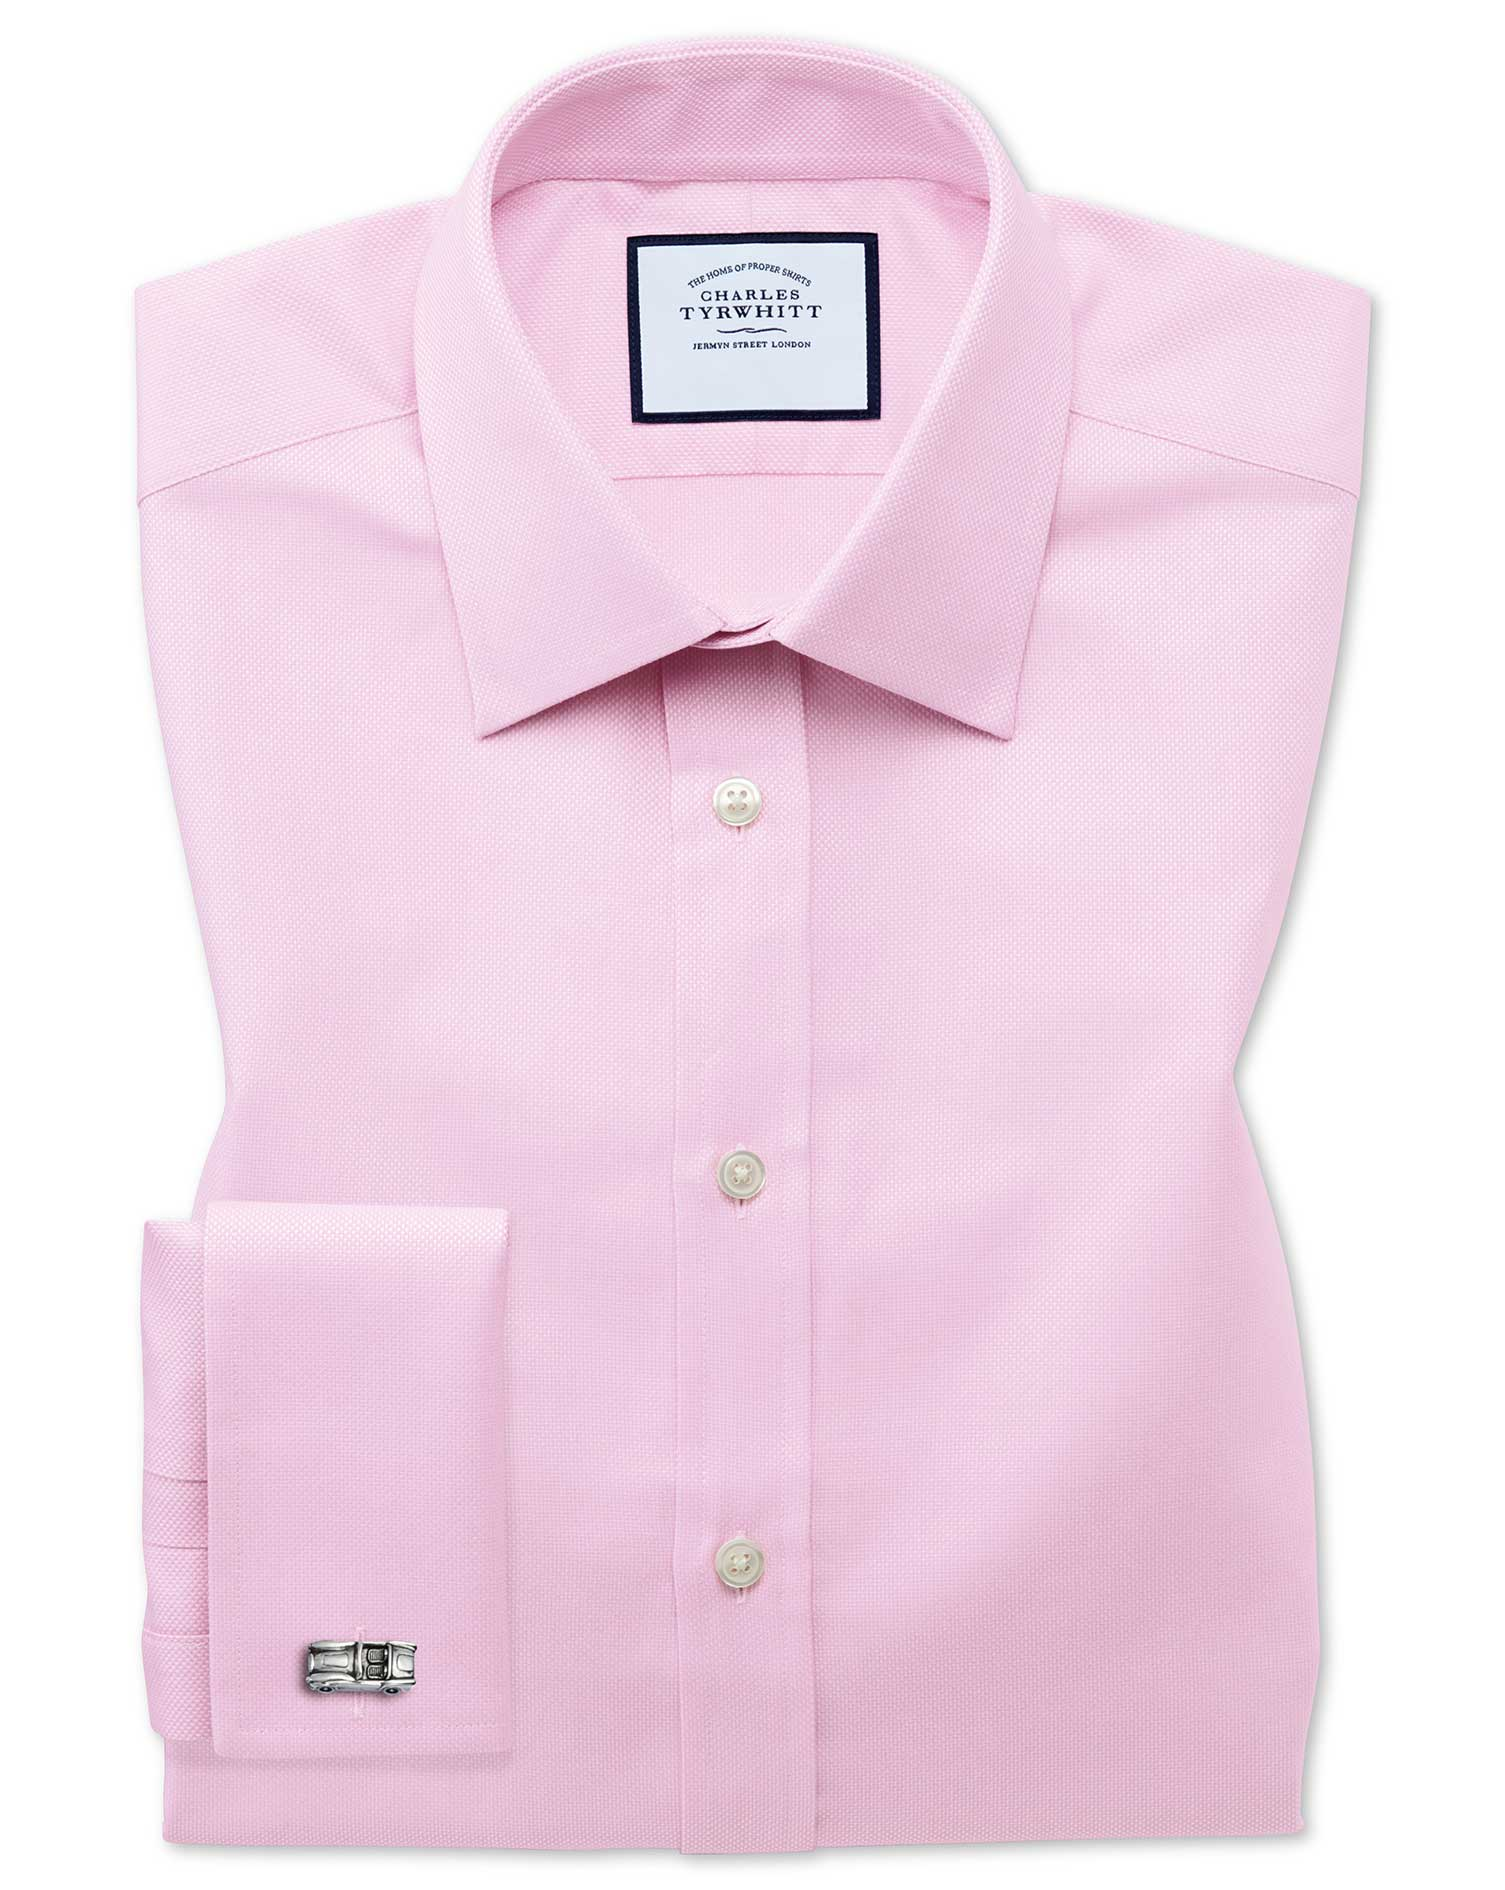 Extra Slim Fit Egyptian Cotton Royal Oxford Pink Formal Shirt Single Cuff Size 15.5/33 by Charles Ty